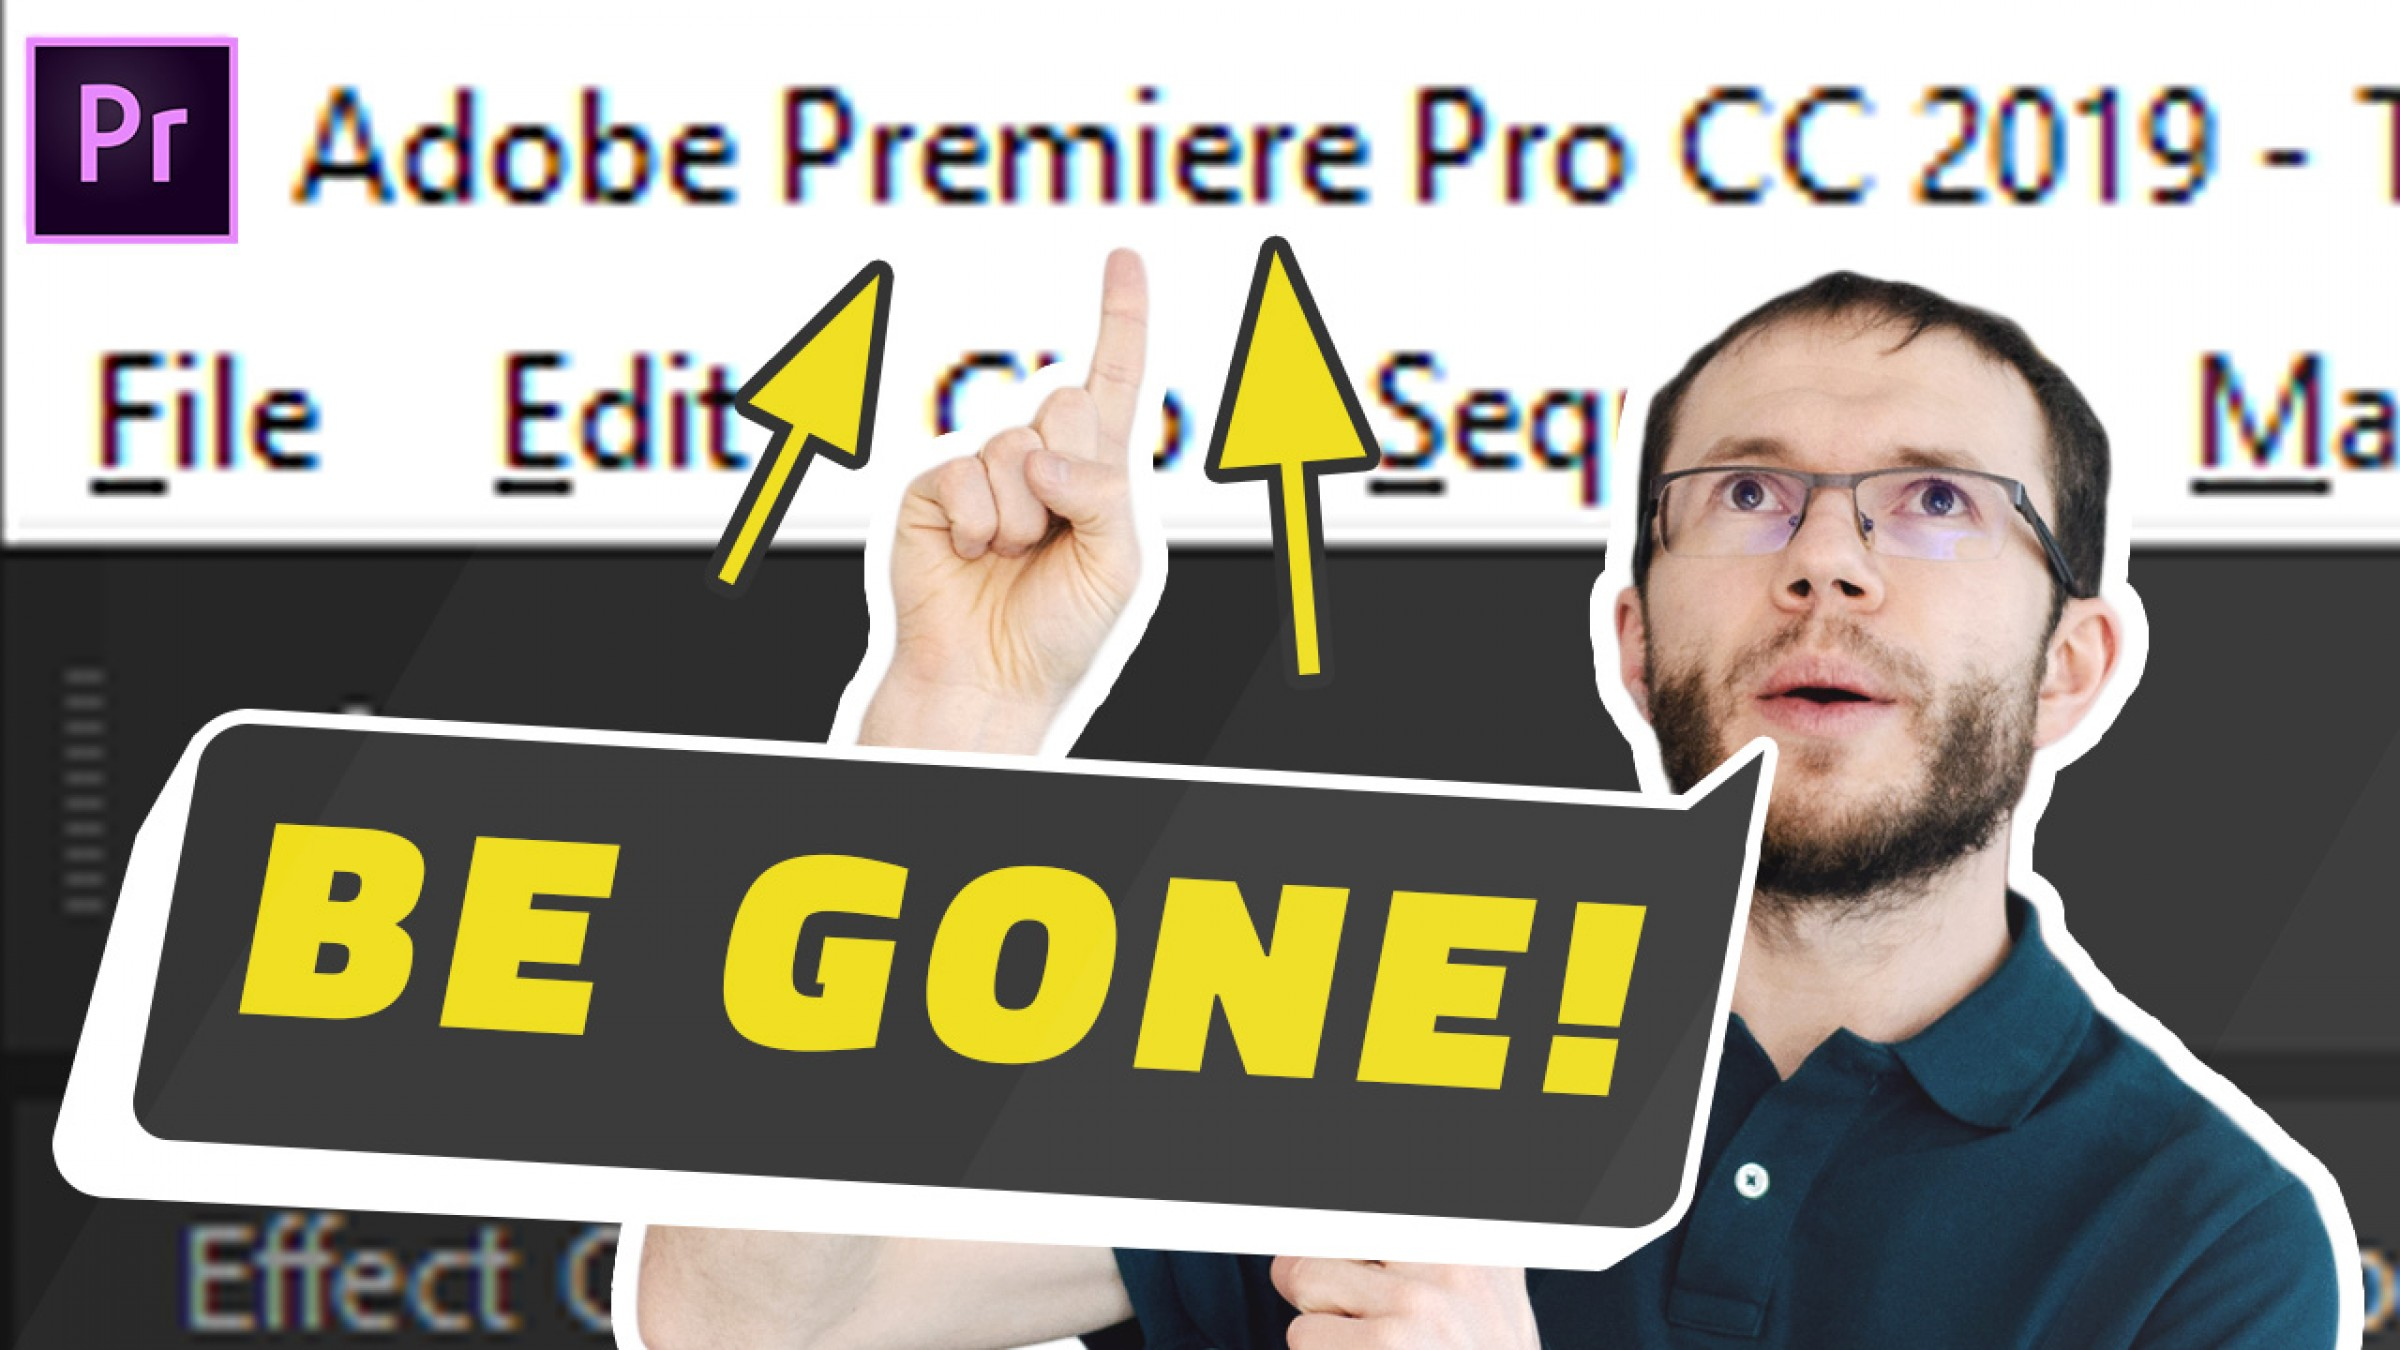 How to Use FULL SCREEN in Premiere Pro